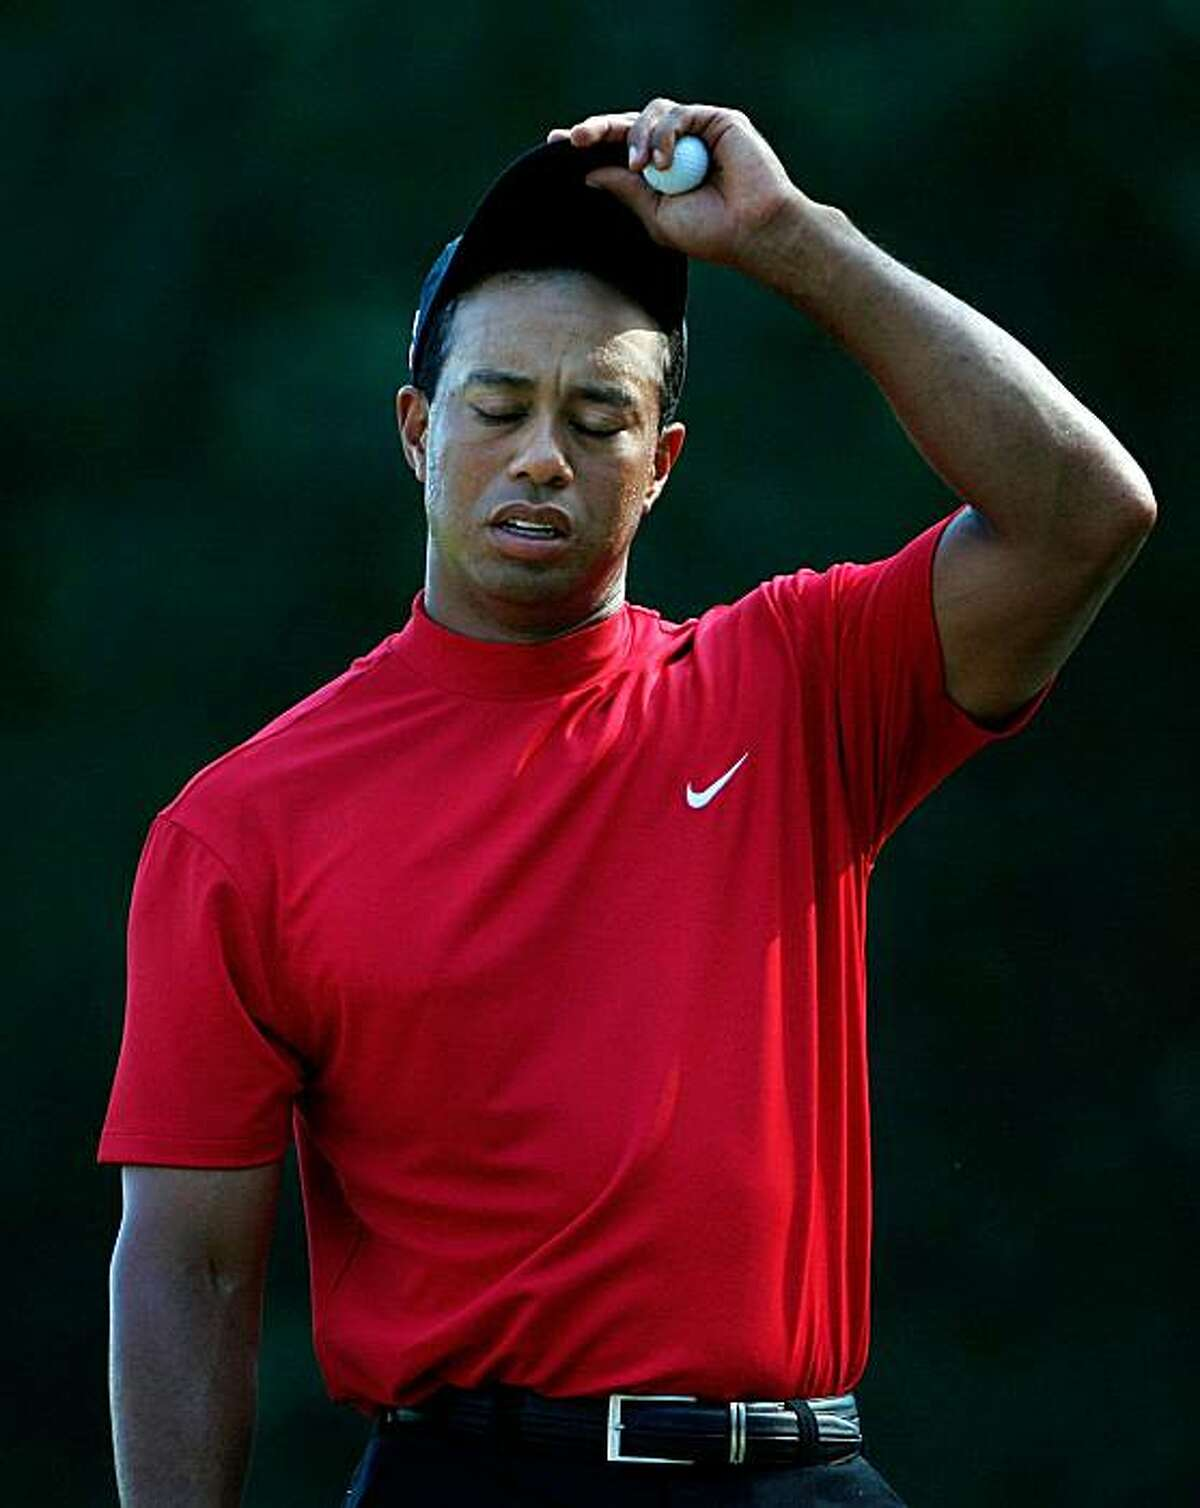 PONTE VEDRA BEACH, FL - MAY 10: Tiger Woods reacts on green of the 12th hole during the final round of THE PLAYERS Championship on THE PLAYERS Stadium Course at TPC Sawgrass on May 10, 2009 in Ponte Vedra Beach, Florida. (Photo by Jamie Squire/Getty Images)